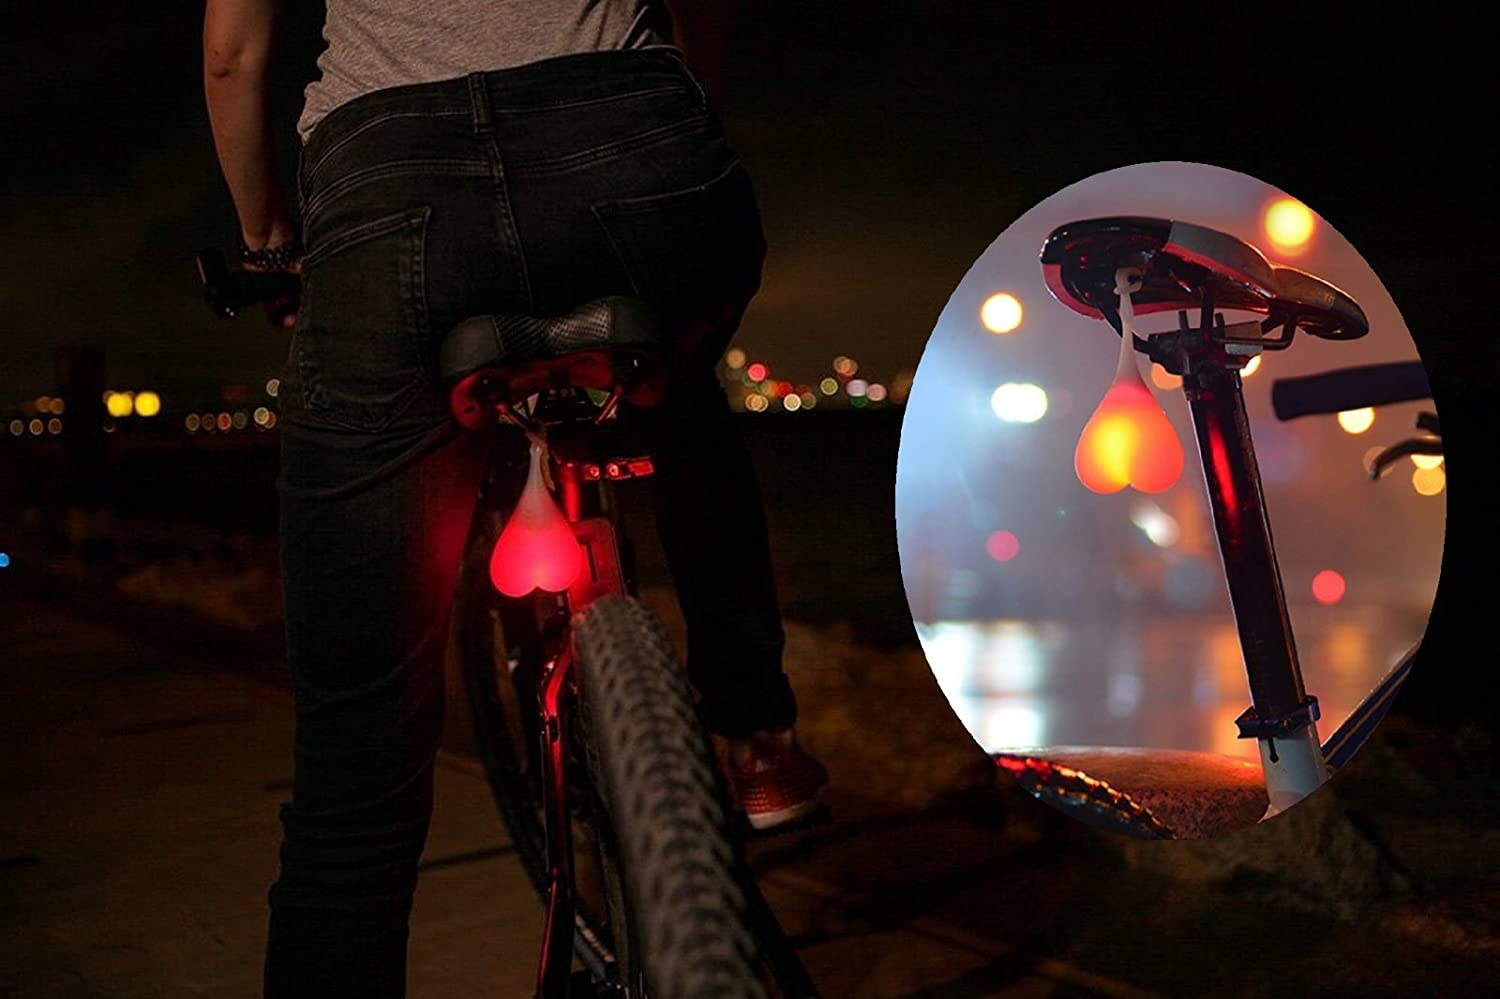 Bike Rear Light Vimmor Creative Silicone Led Bicycle Tail Flashing Safety Warning Lights With Three